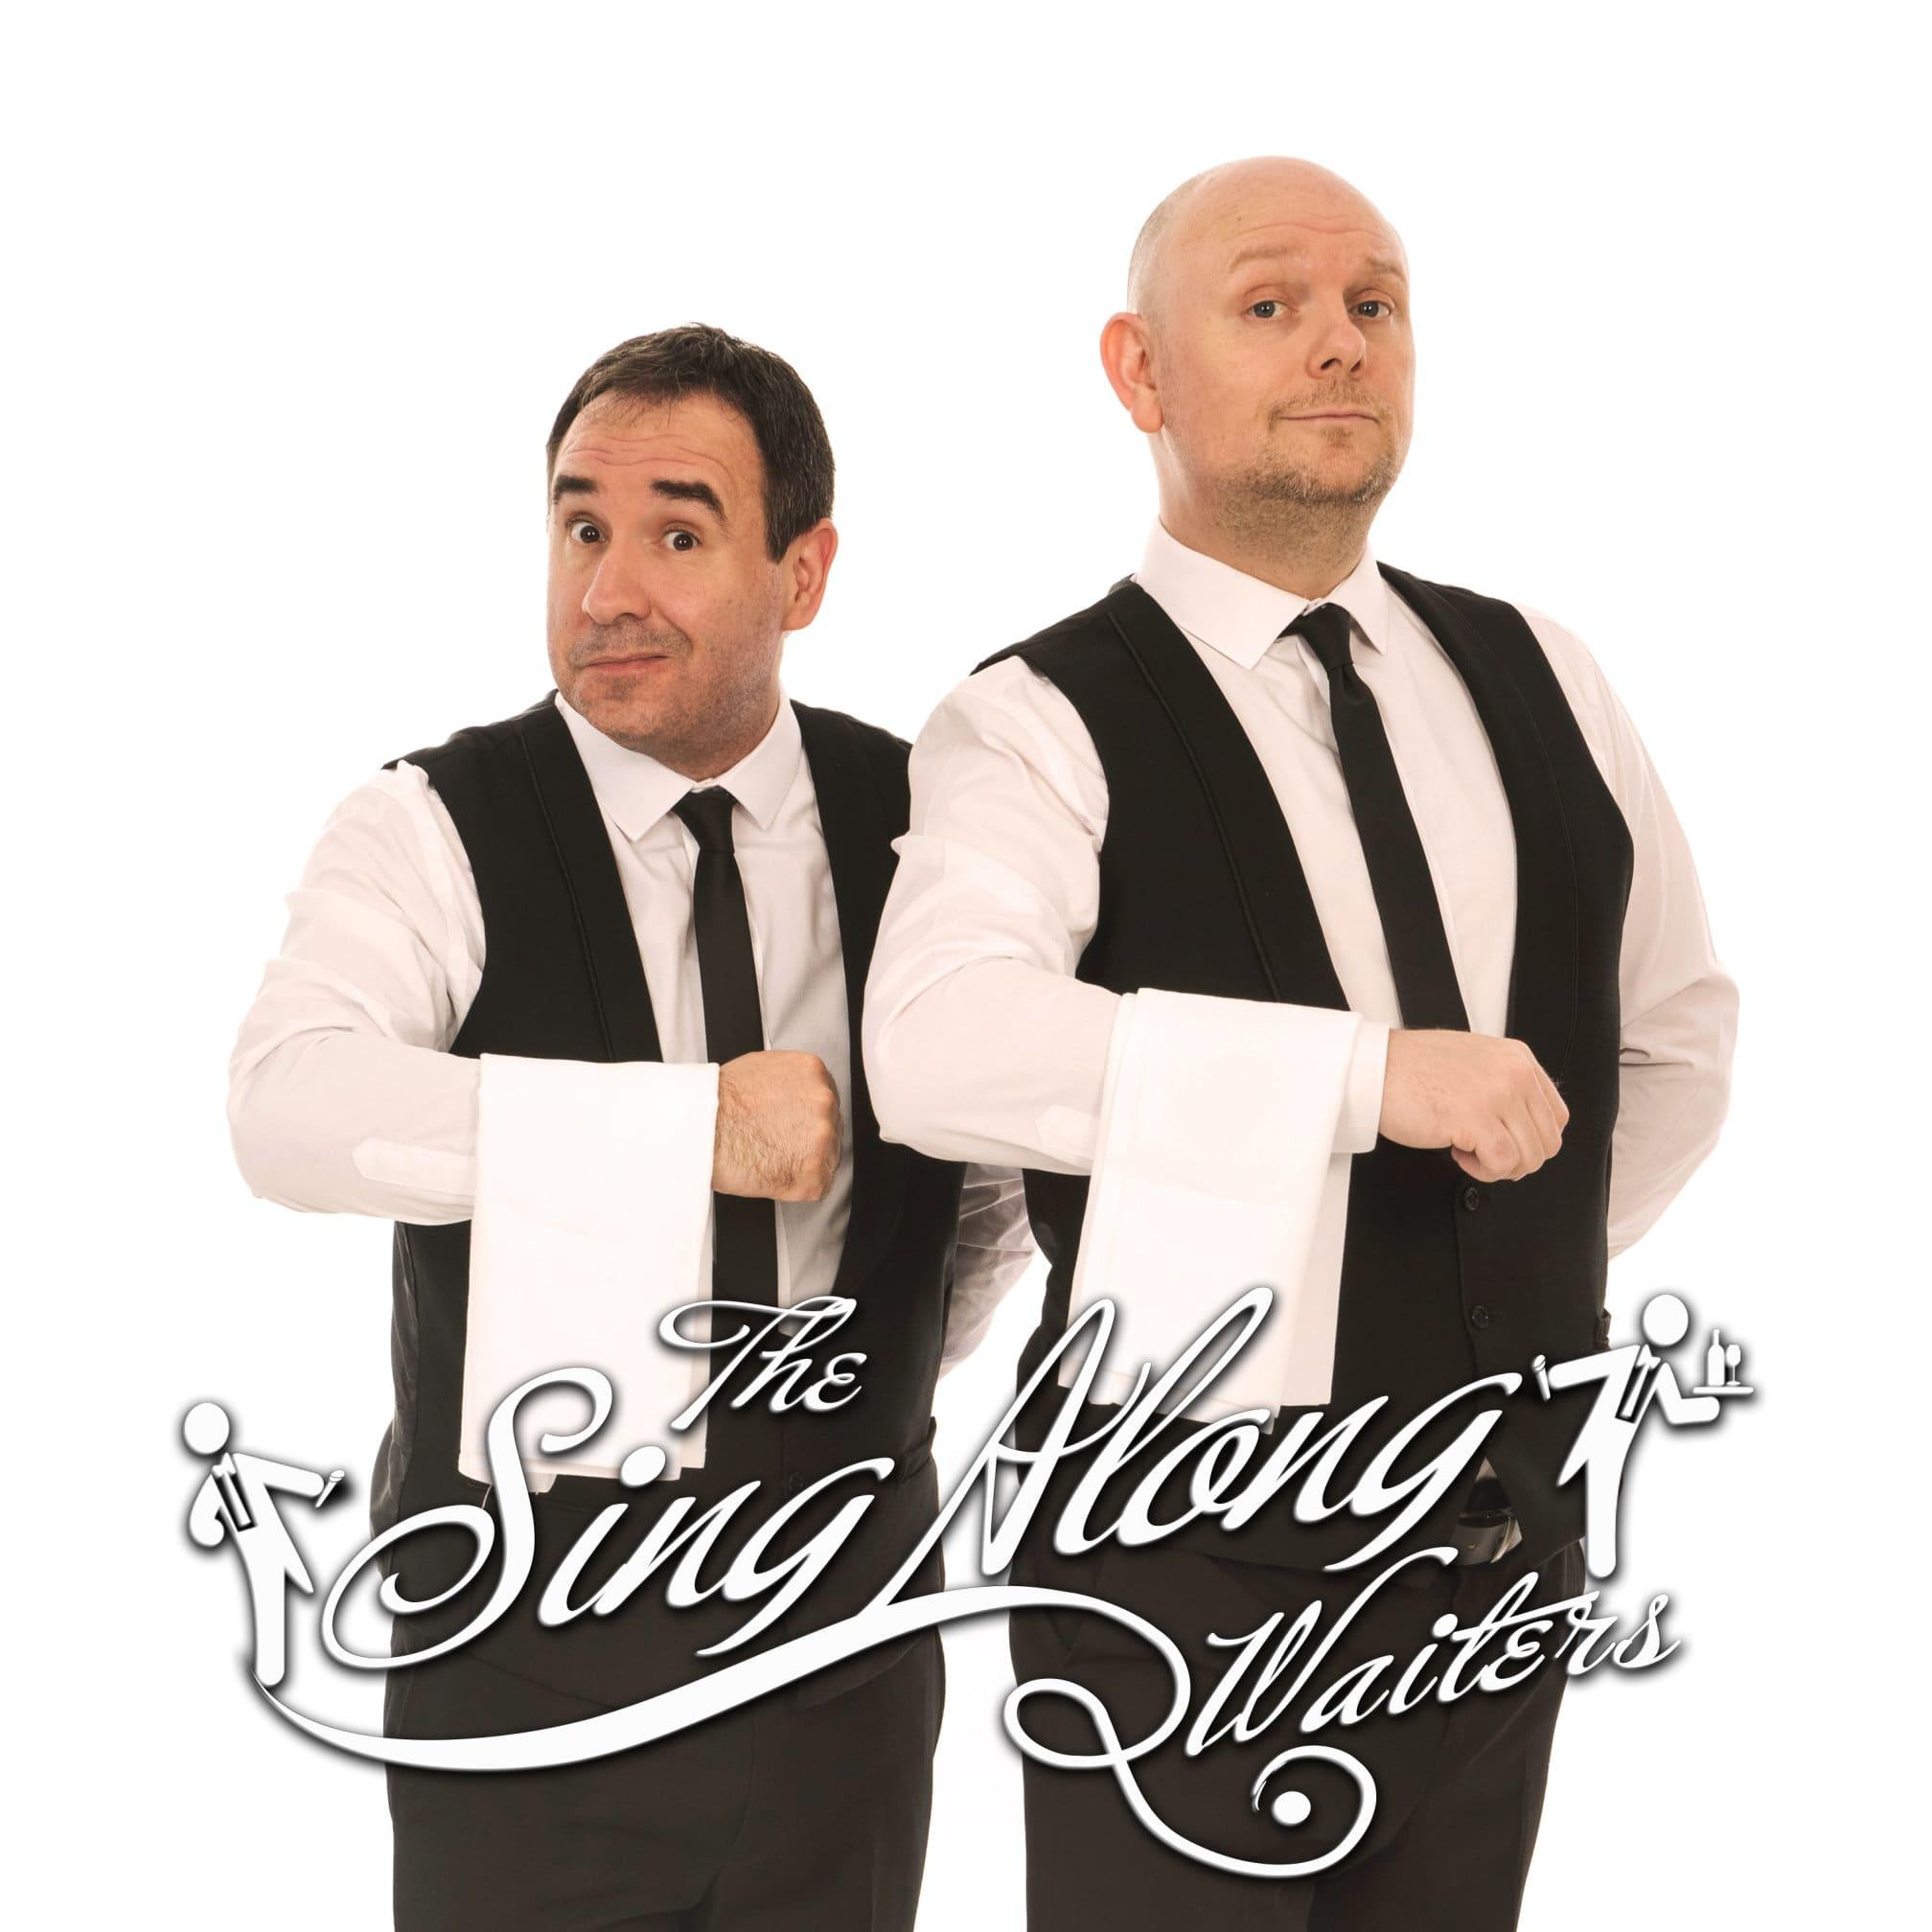 The Sing Along Waiters - Manchester, Lancashire M29 7WB - 03301 331374 | ShowMeLocal.com